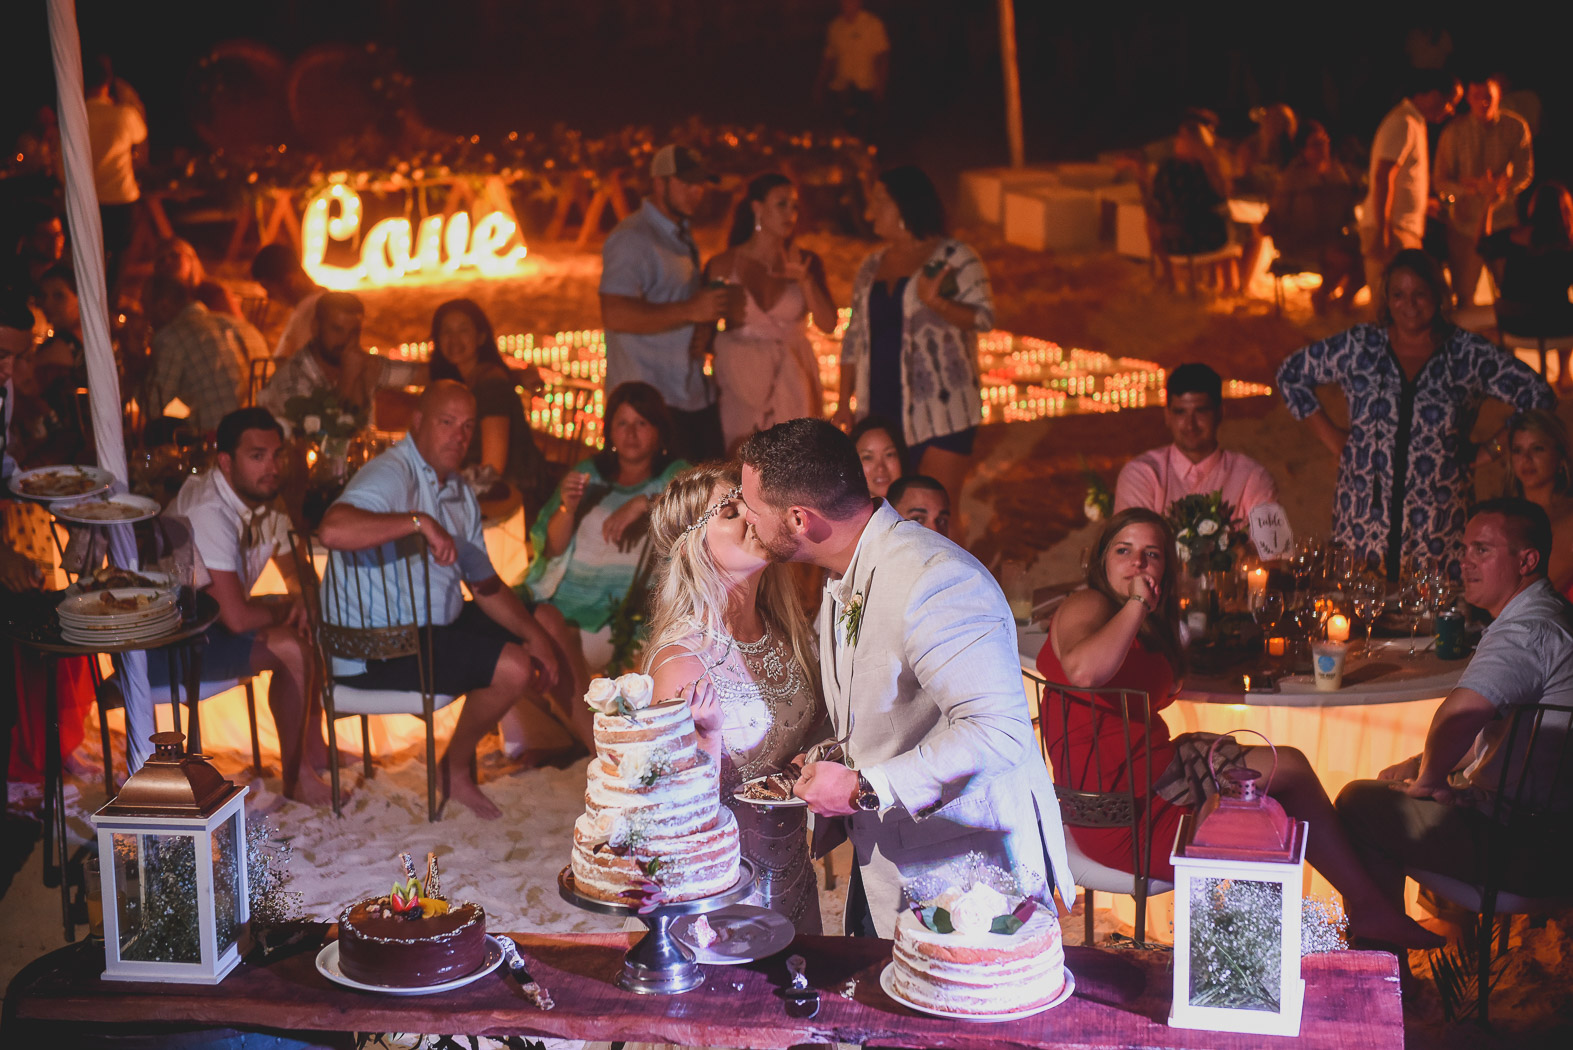 A just married couple kissing next to a cake